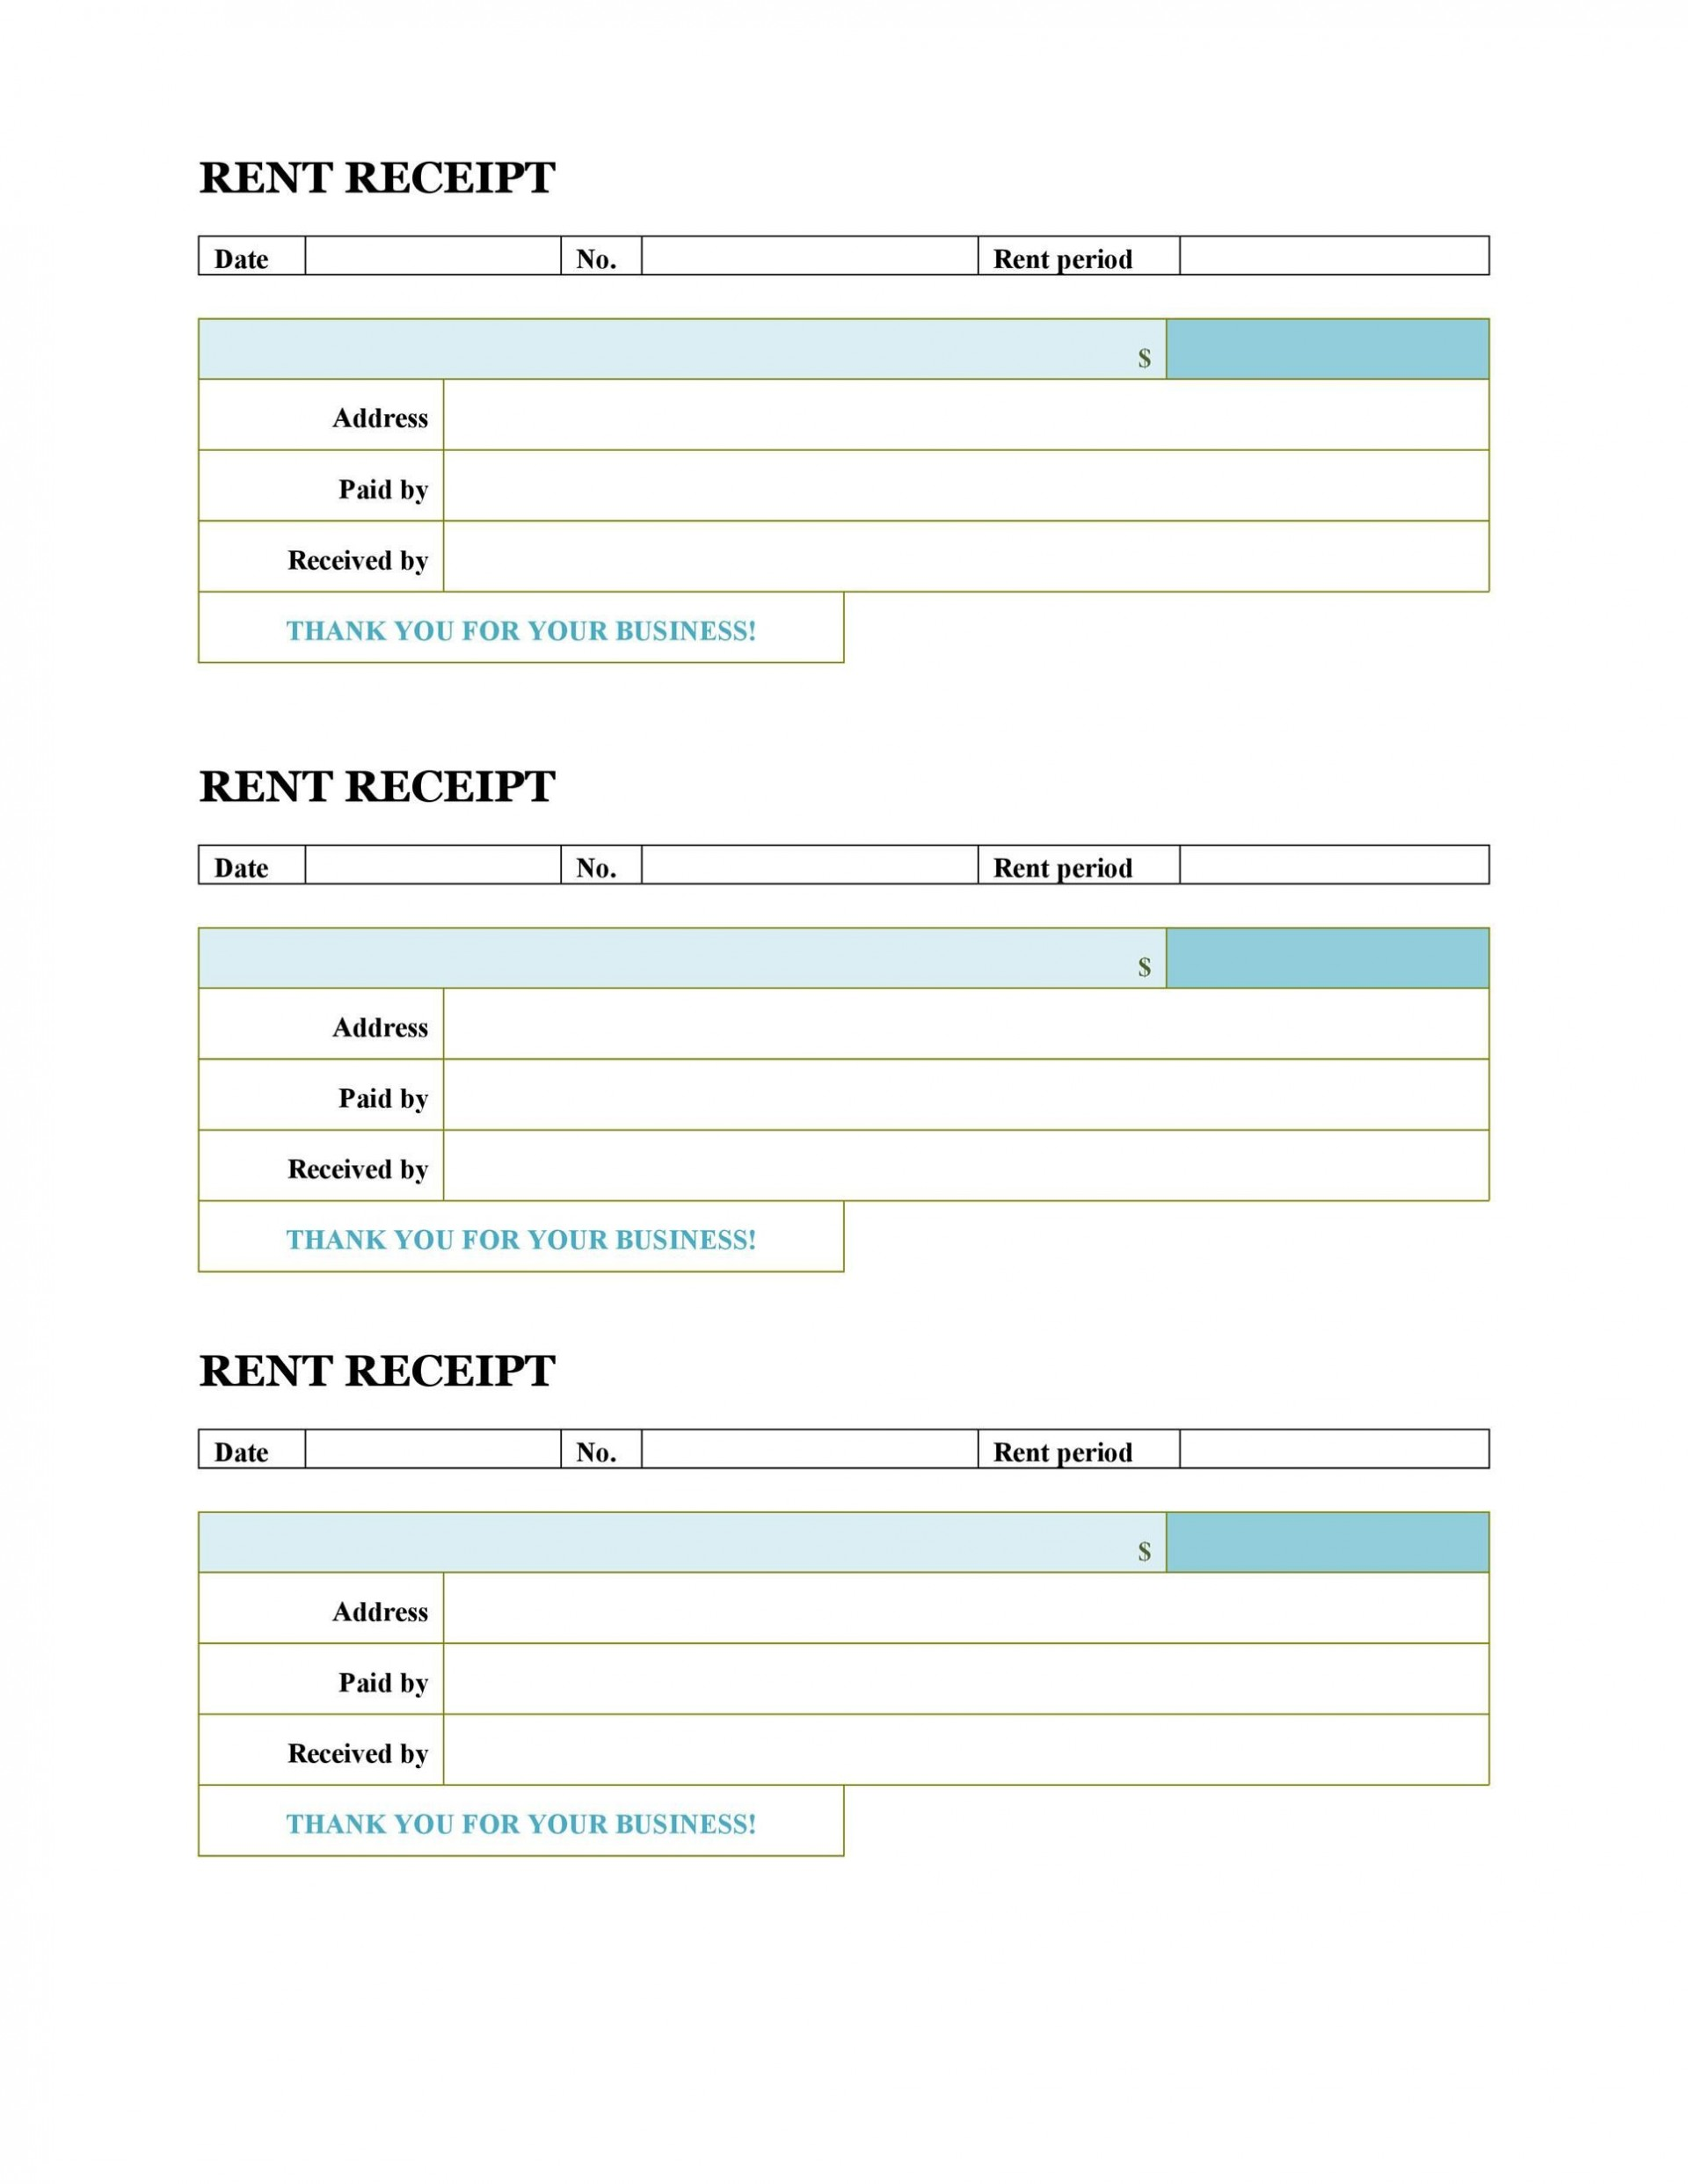 008 Unforgettable House Rent Receipt Template India Doc Sample  Format Download1920